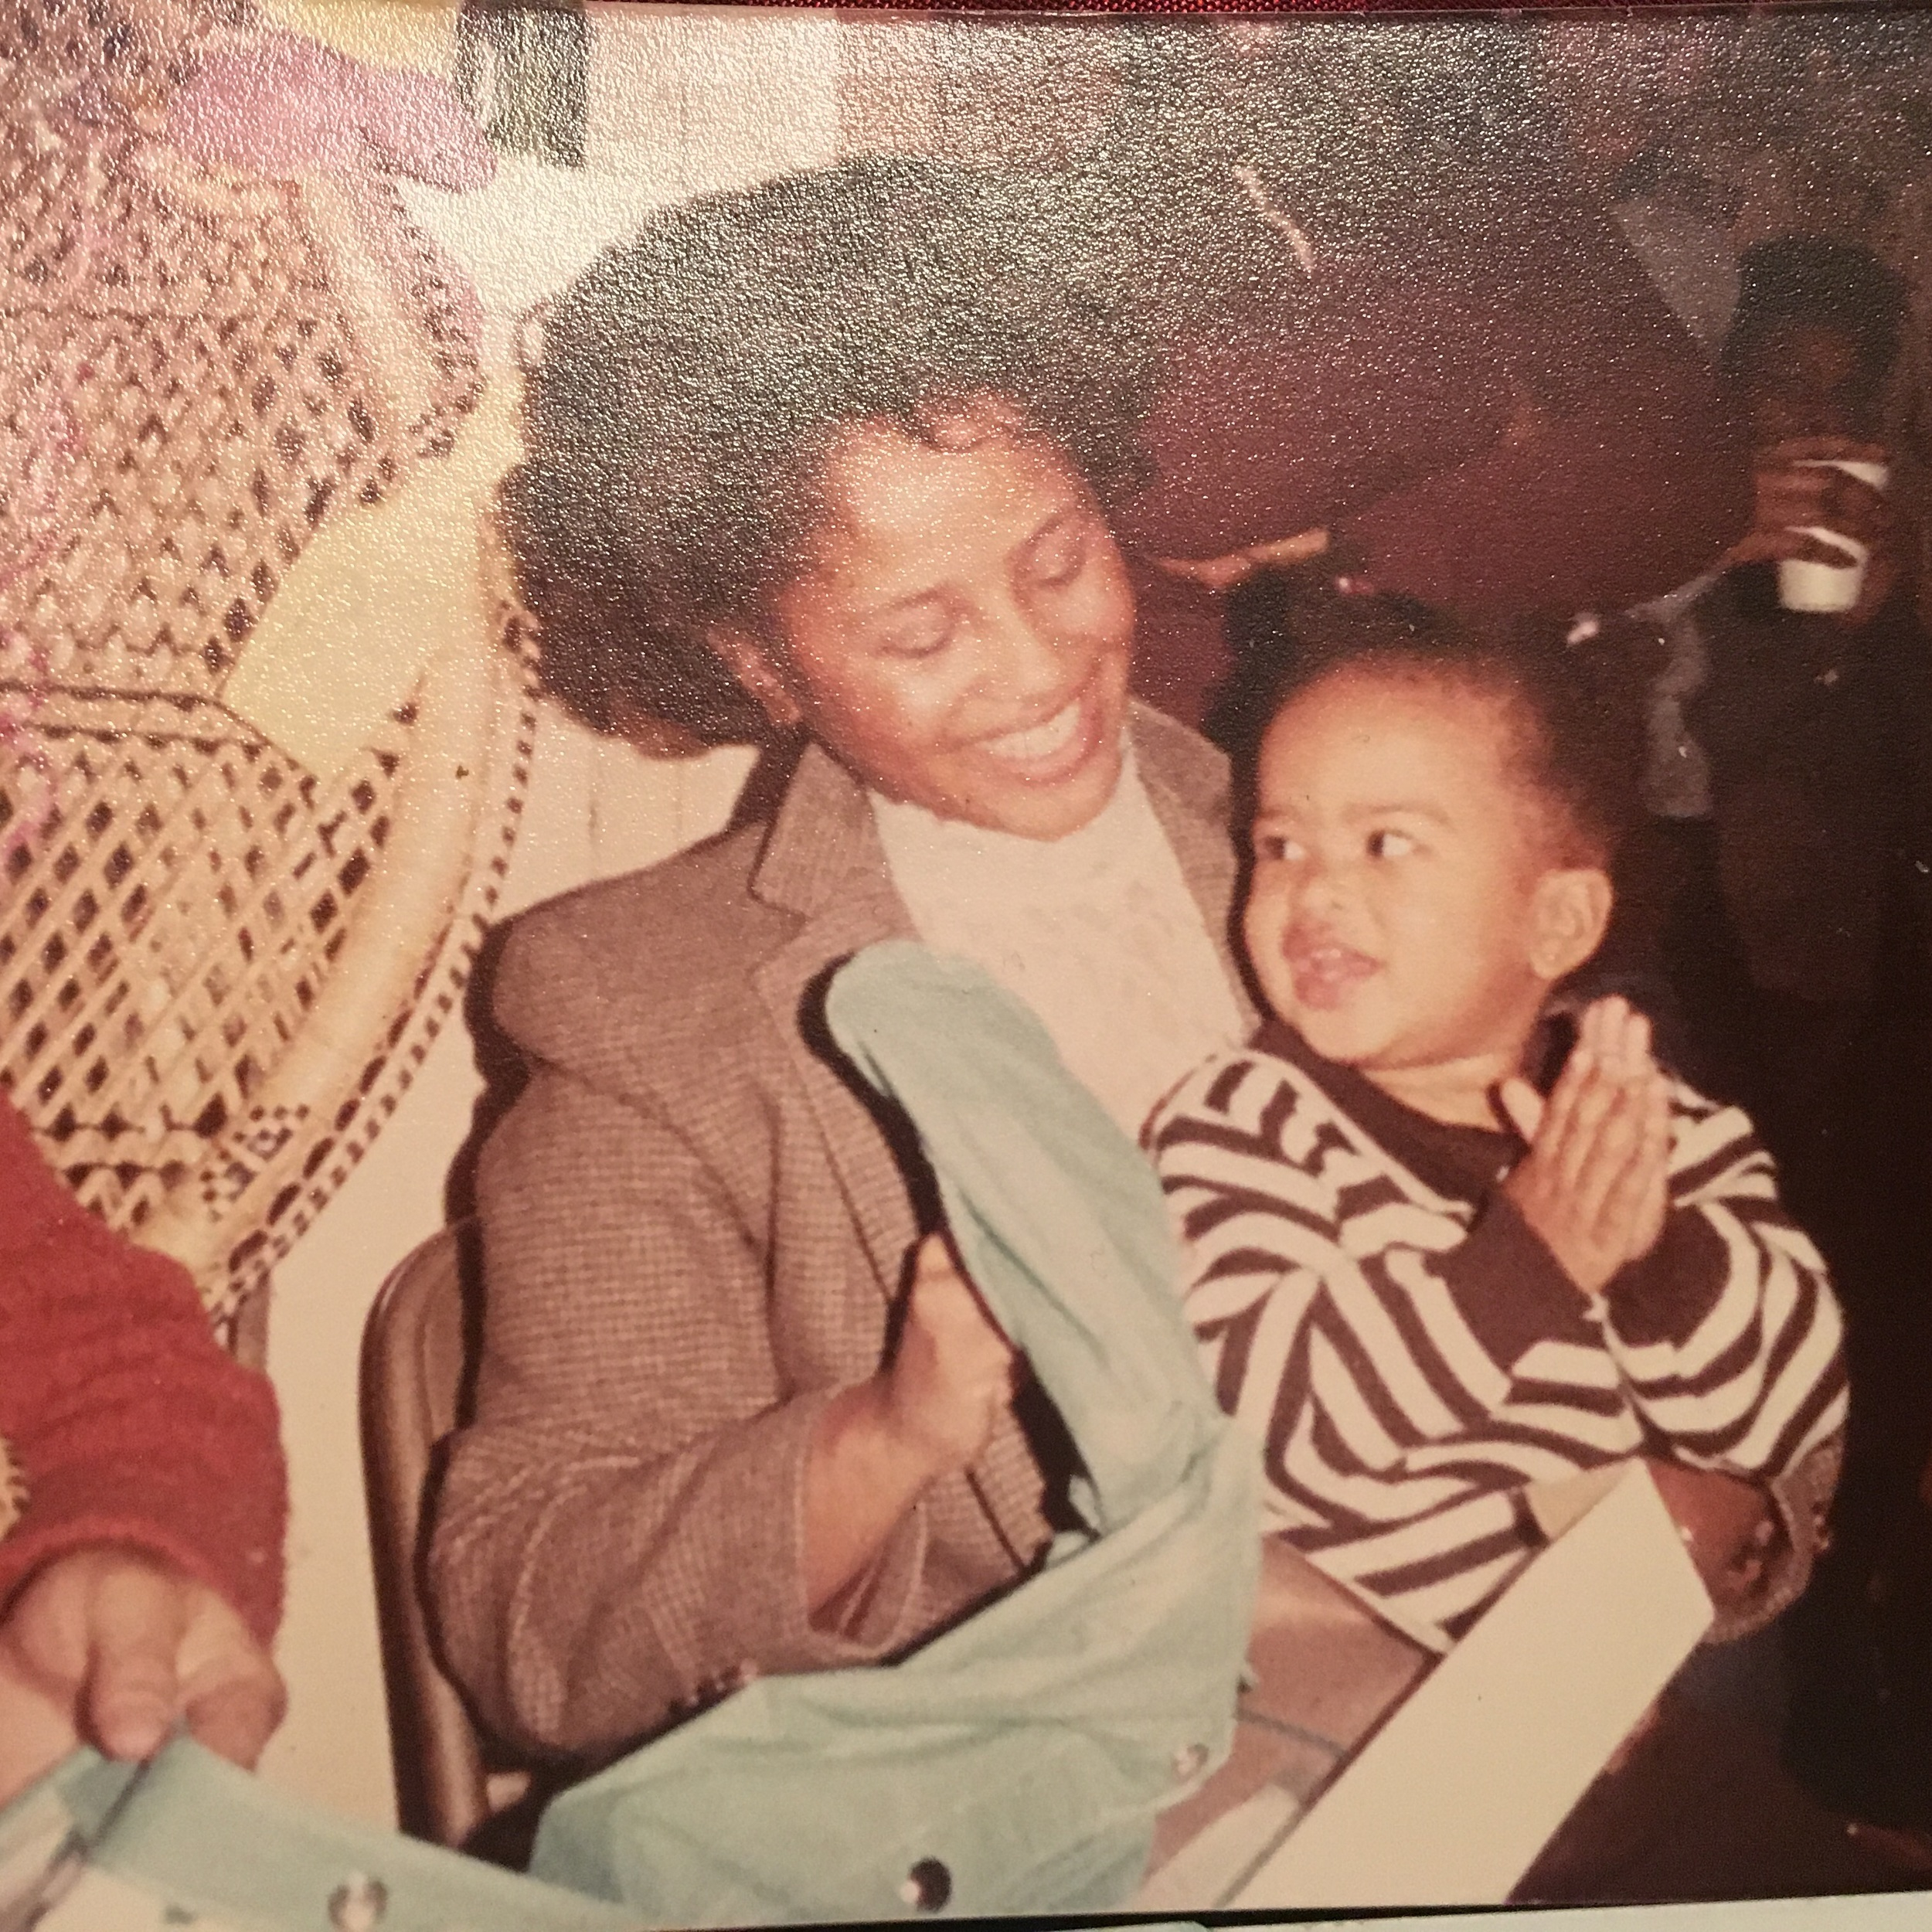 At a baby shower for my cousin during a visit to my mom's hometown of Philly. It was the only time I met my grandmother before she passed.